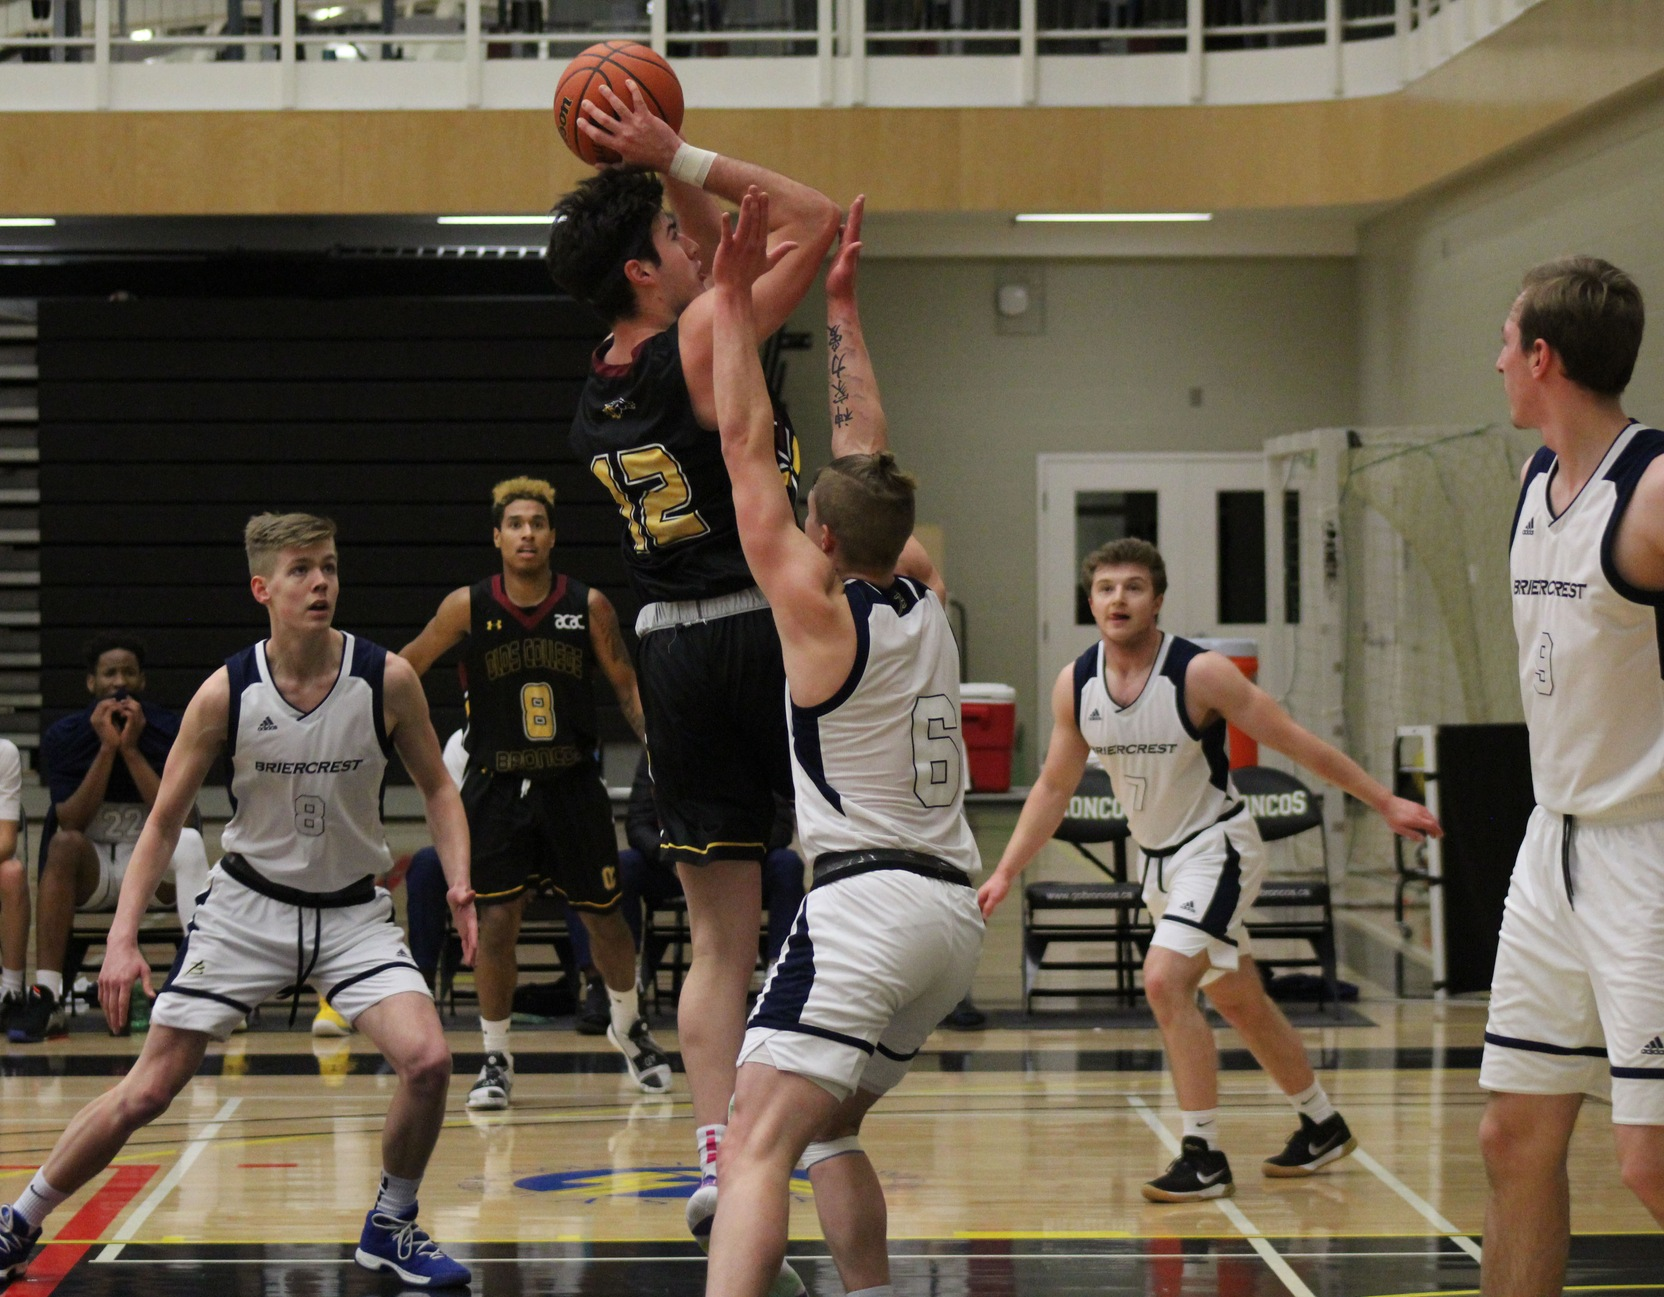 Hilman's double-double not enough to stop Briercrest